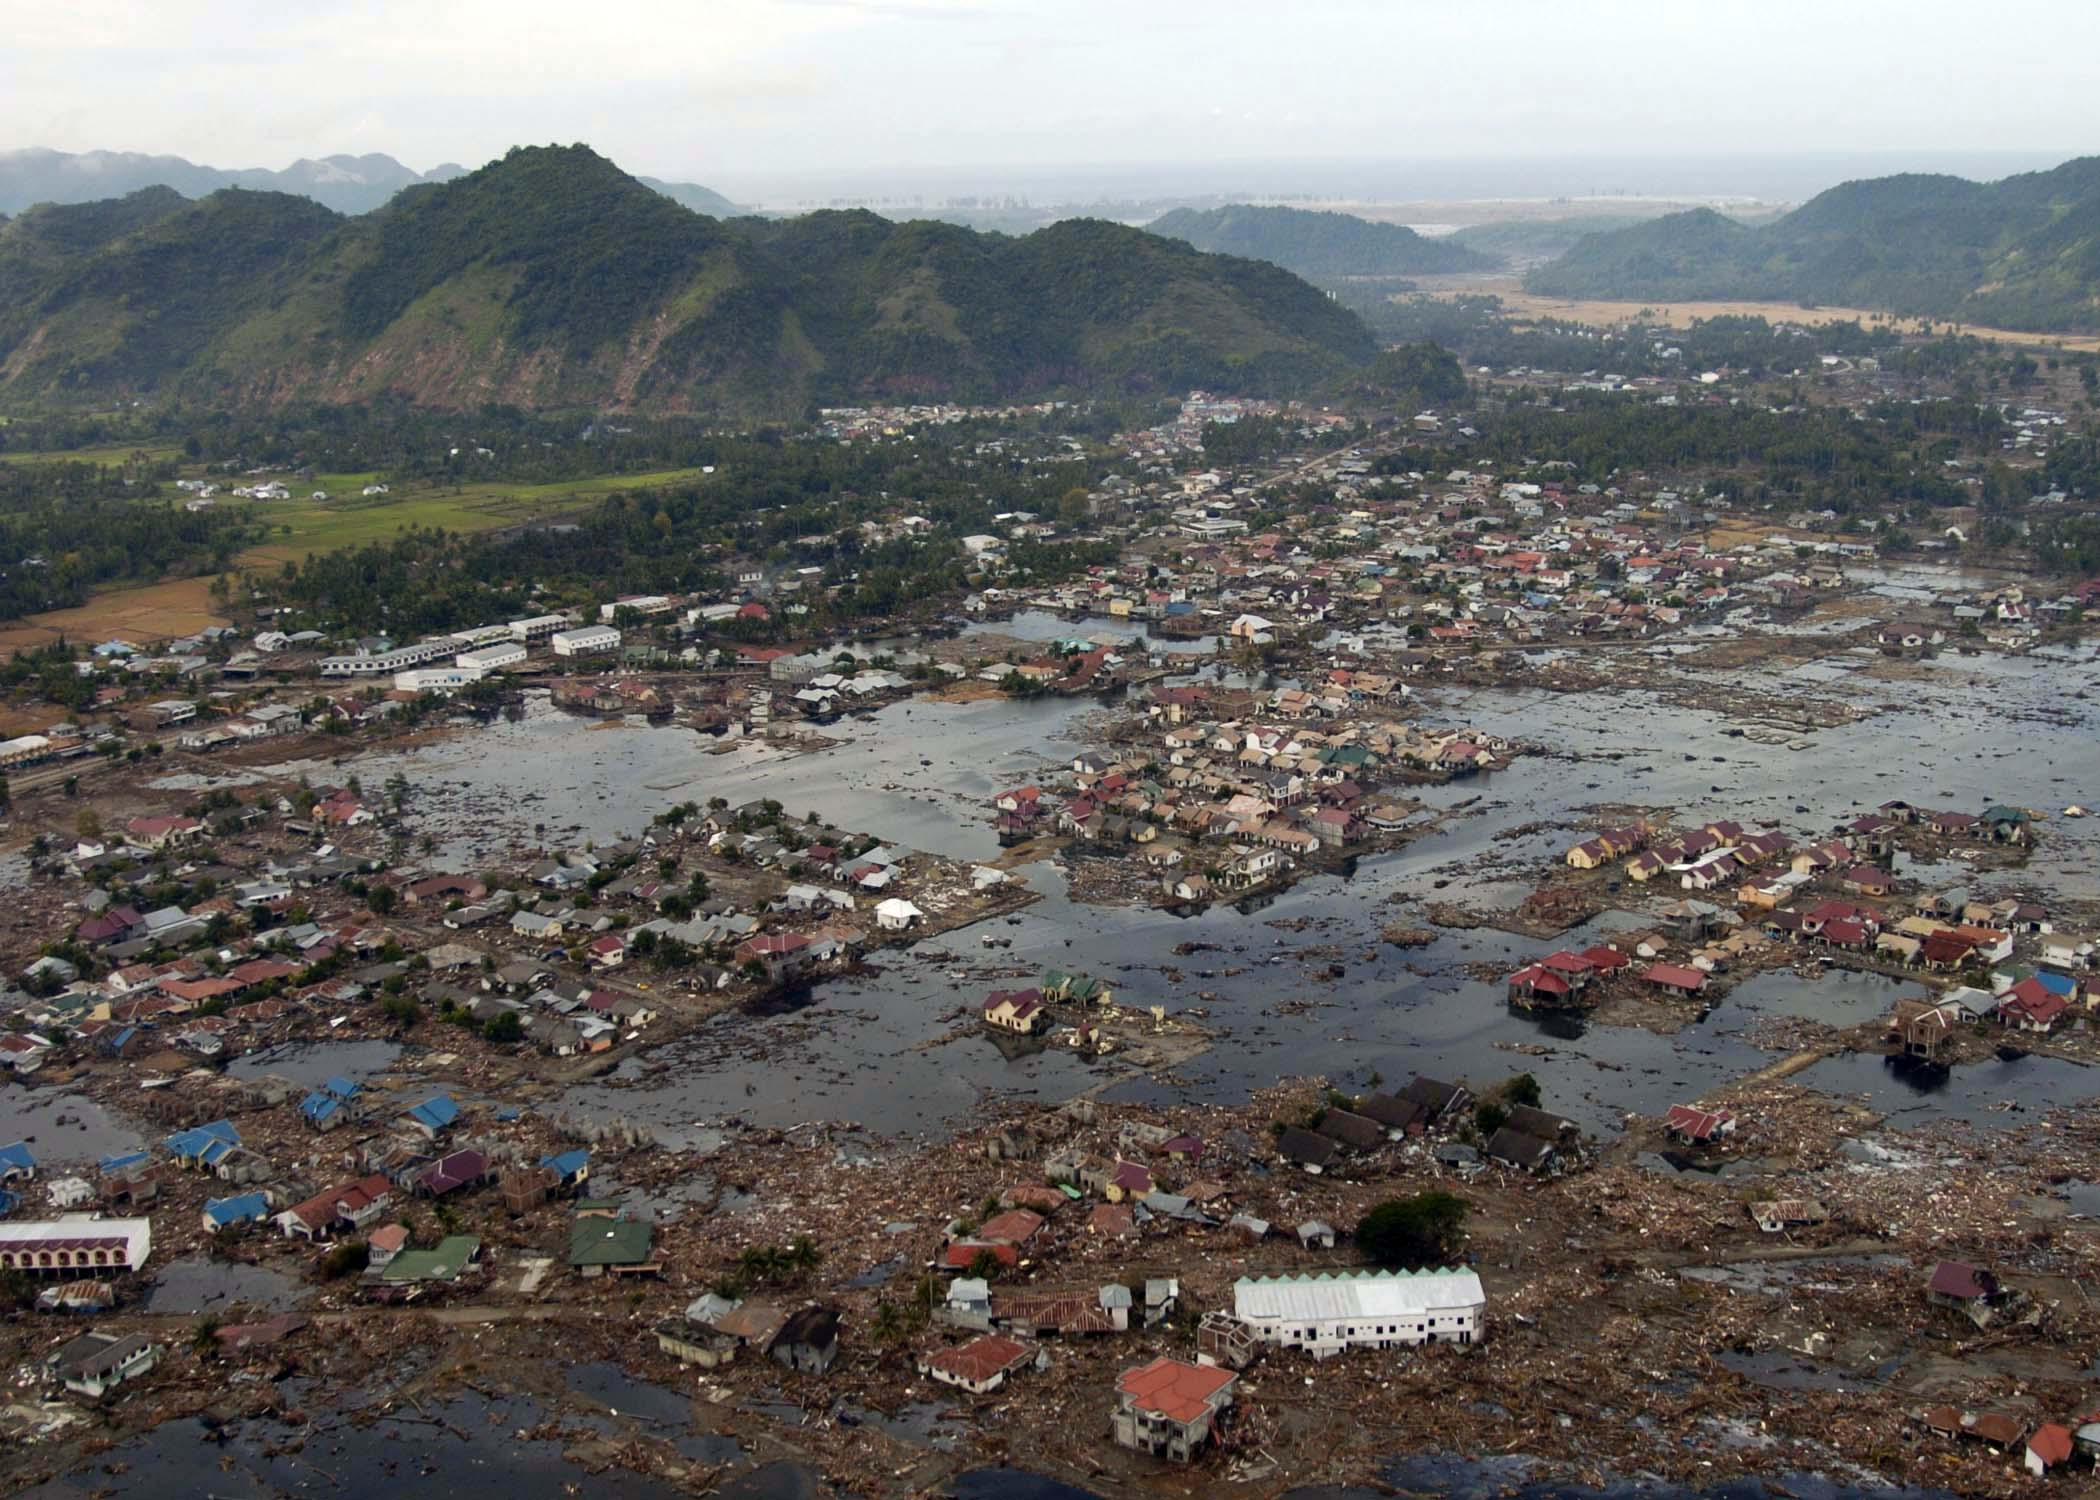 us_navy_050102-n-9593m-040_a_village_near_the_coast_of_sumatra_lays_in_ruin_after_the_tsunami_that_struck_south_east_asia.jpg